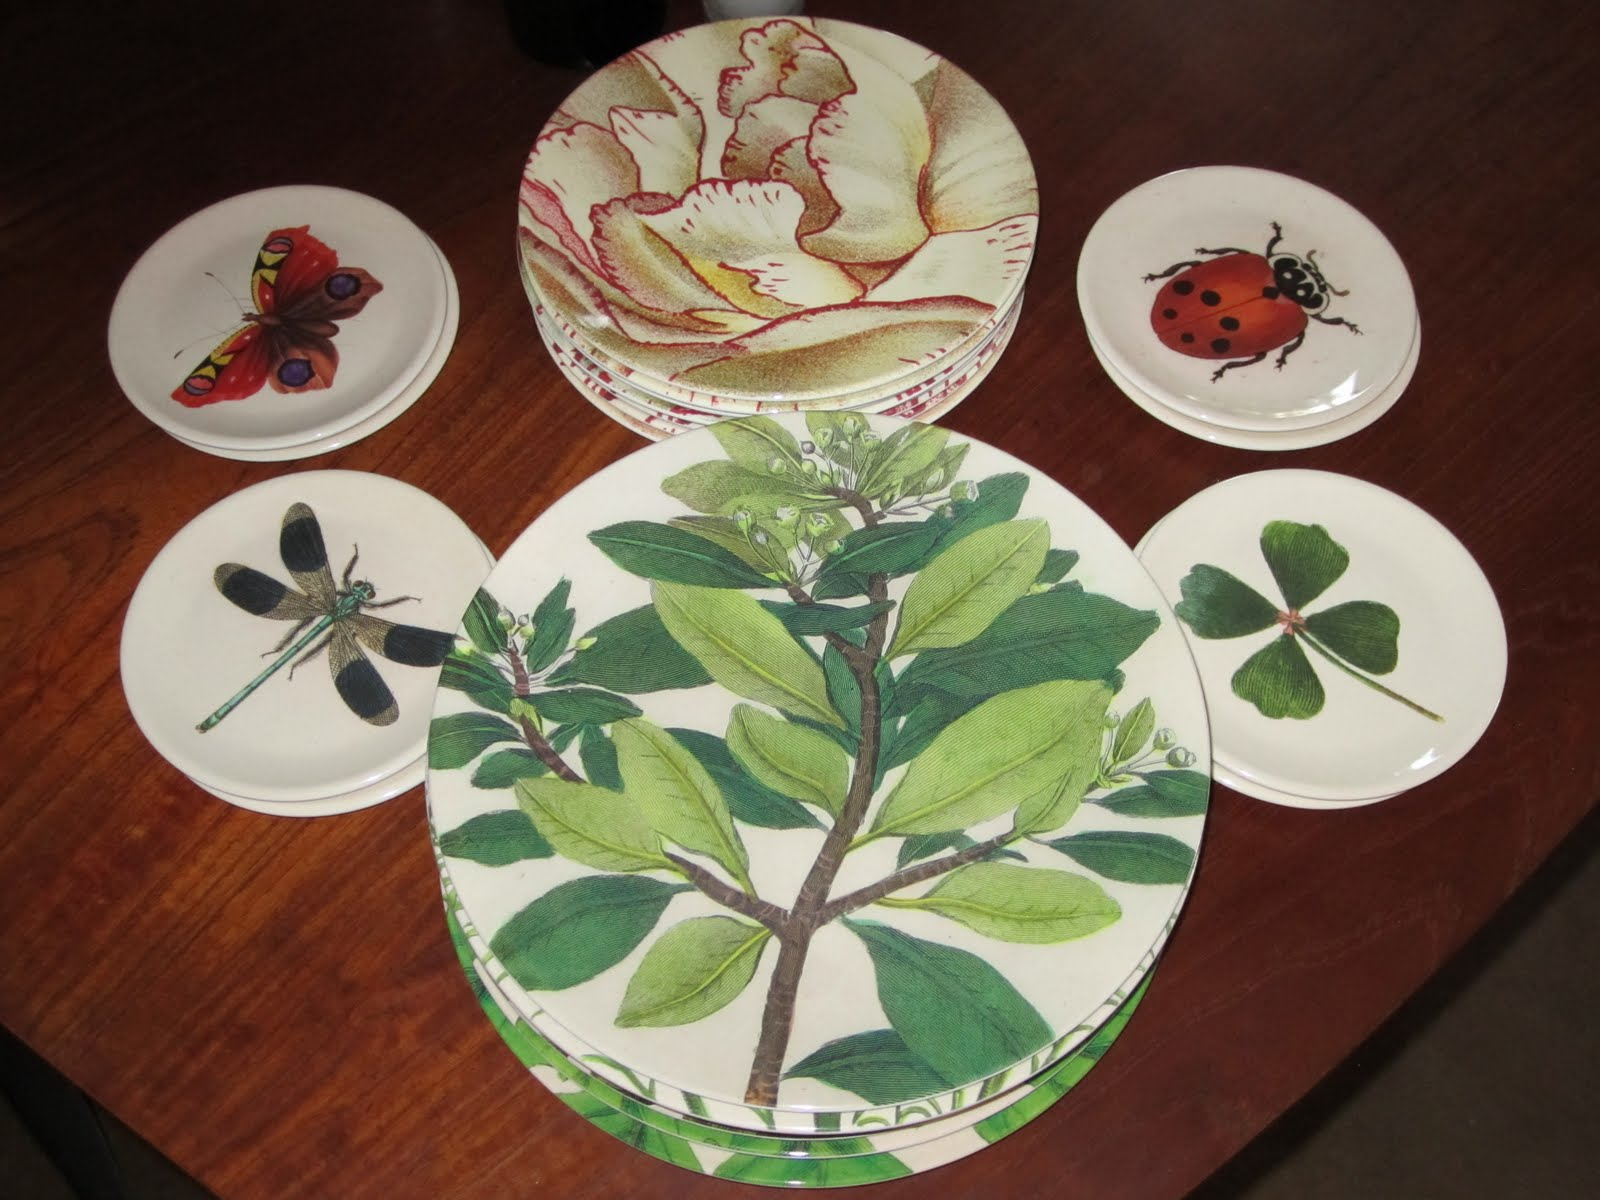 The John Derian Plates Arrived From Target 8 Small Etizer In 4 Patterns Check Salad Desserts Variations Of Candy Cane Carnation